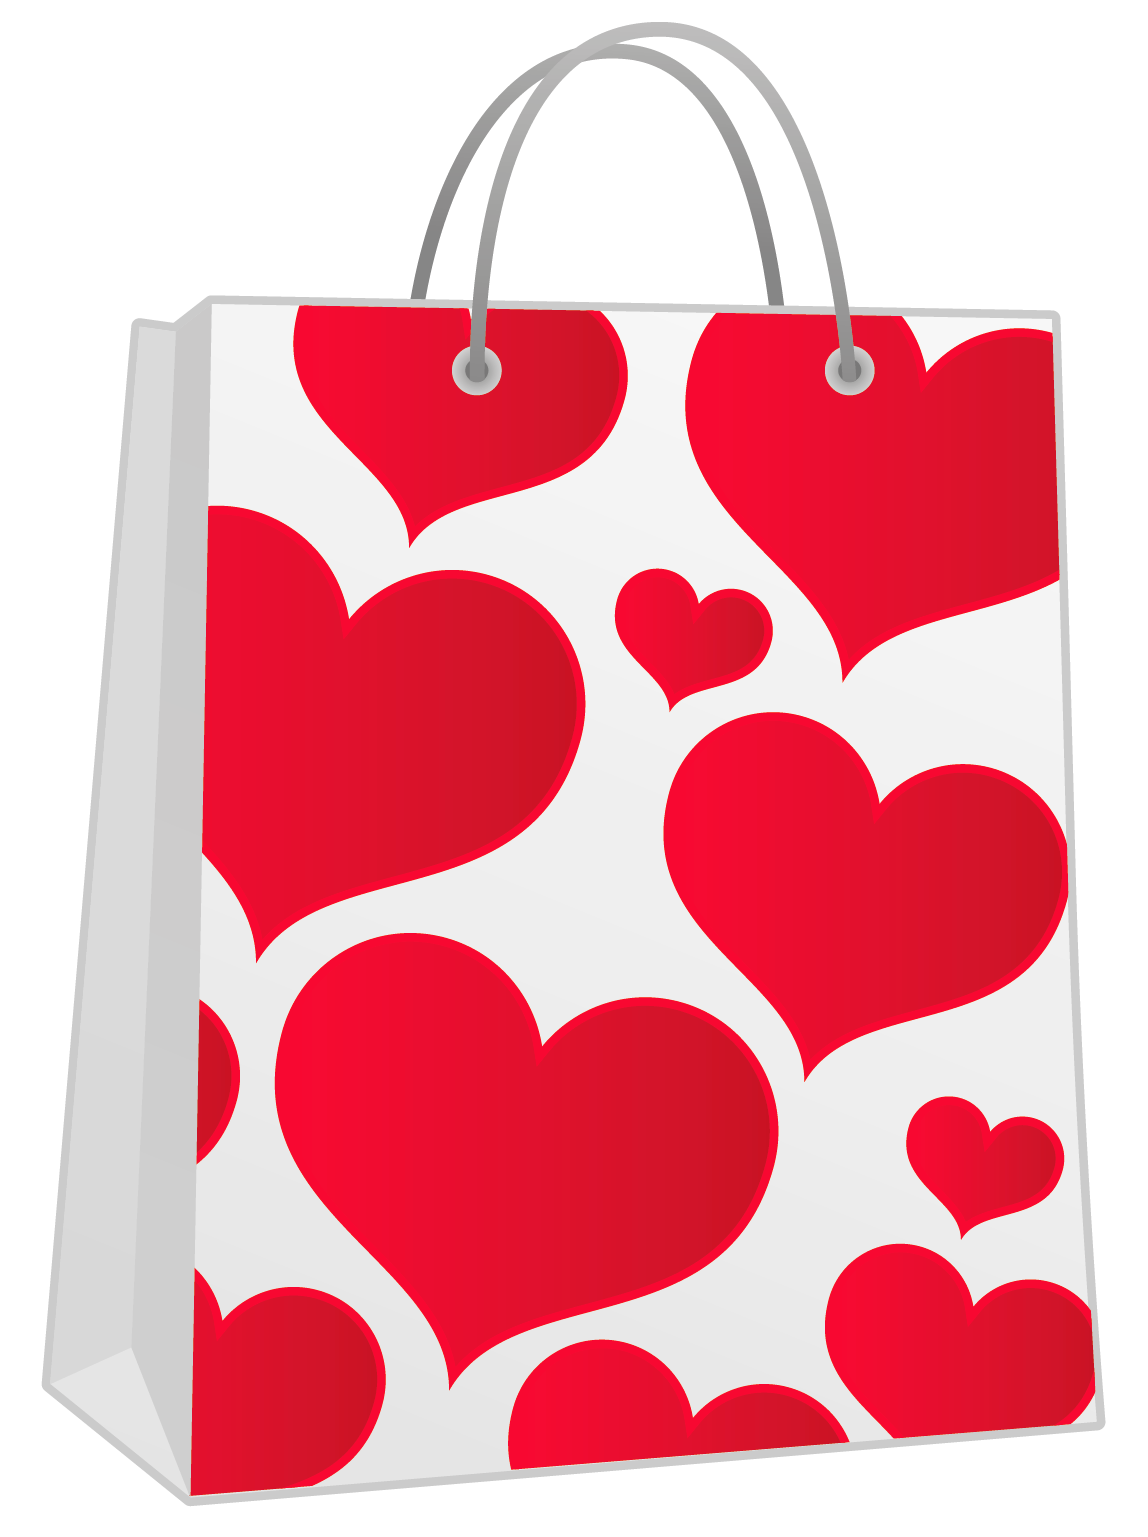 Free gift bag clipart.